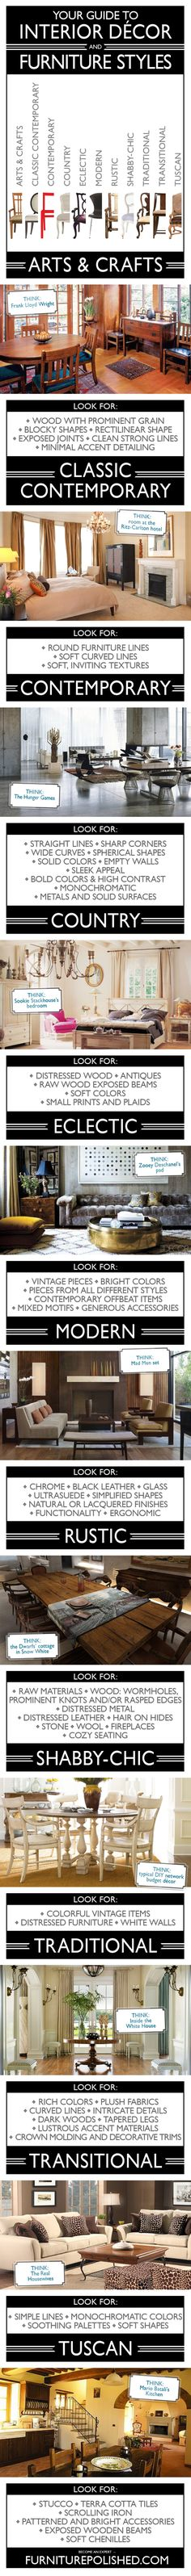 The Ultimate Infographic for understanding interior design/furniture styles.... My problem is that I like half of them....